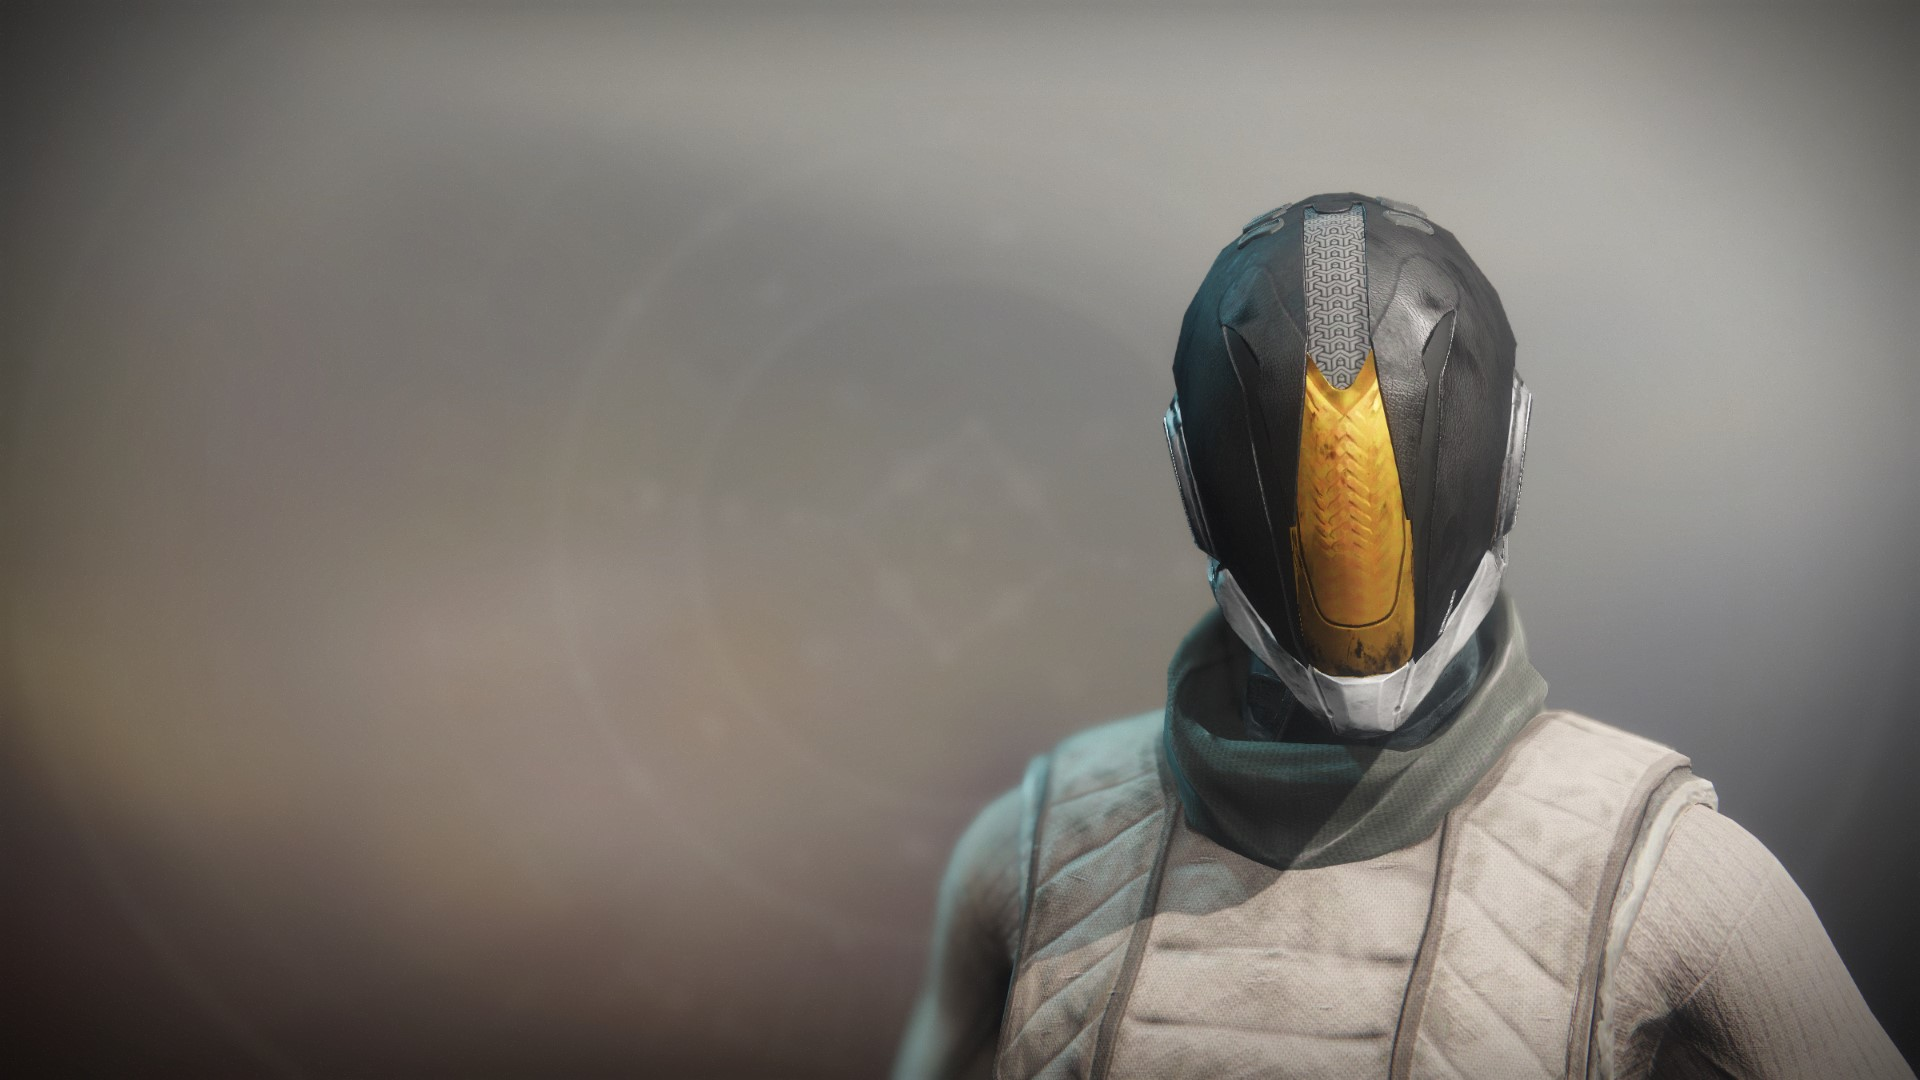 An in-game render of the Superior's Vision Hood.